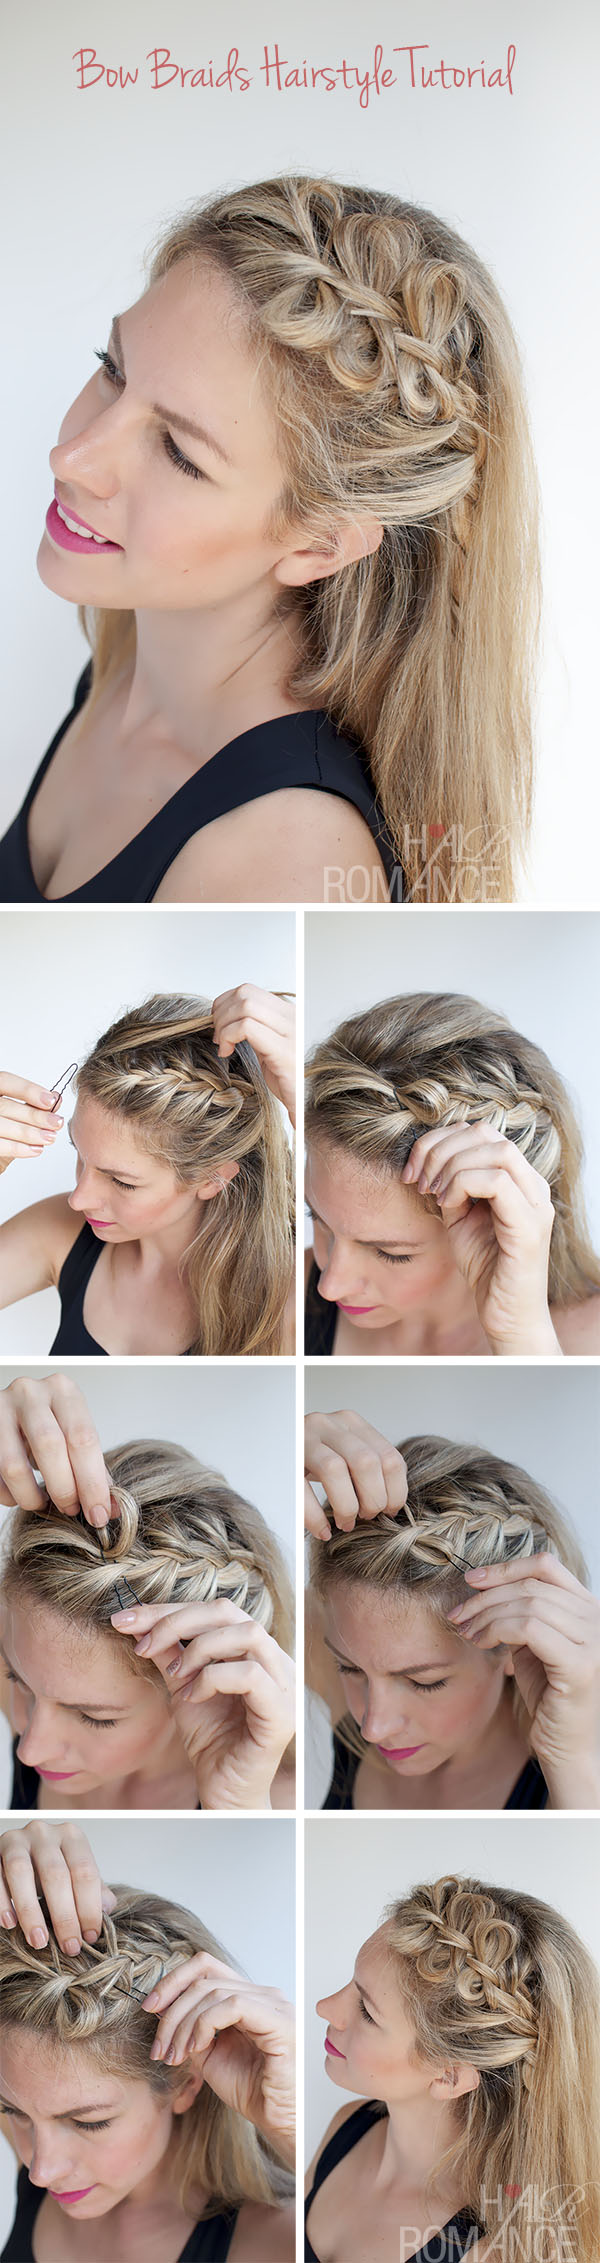 Hair Bow Braids Hairstyle Tutorial